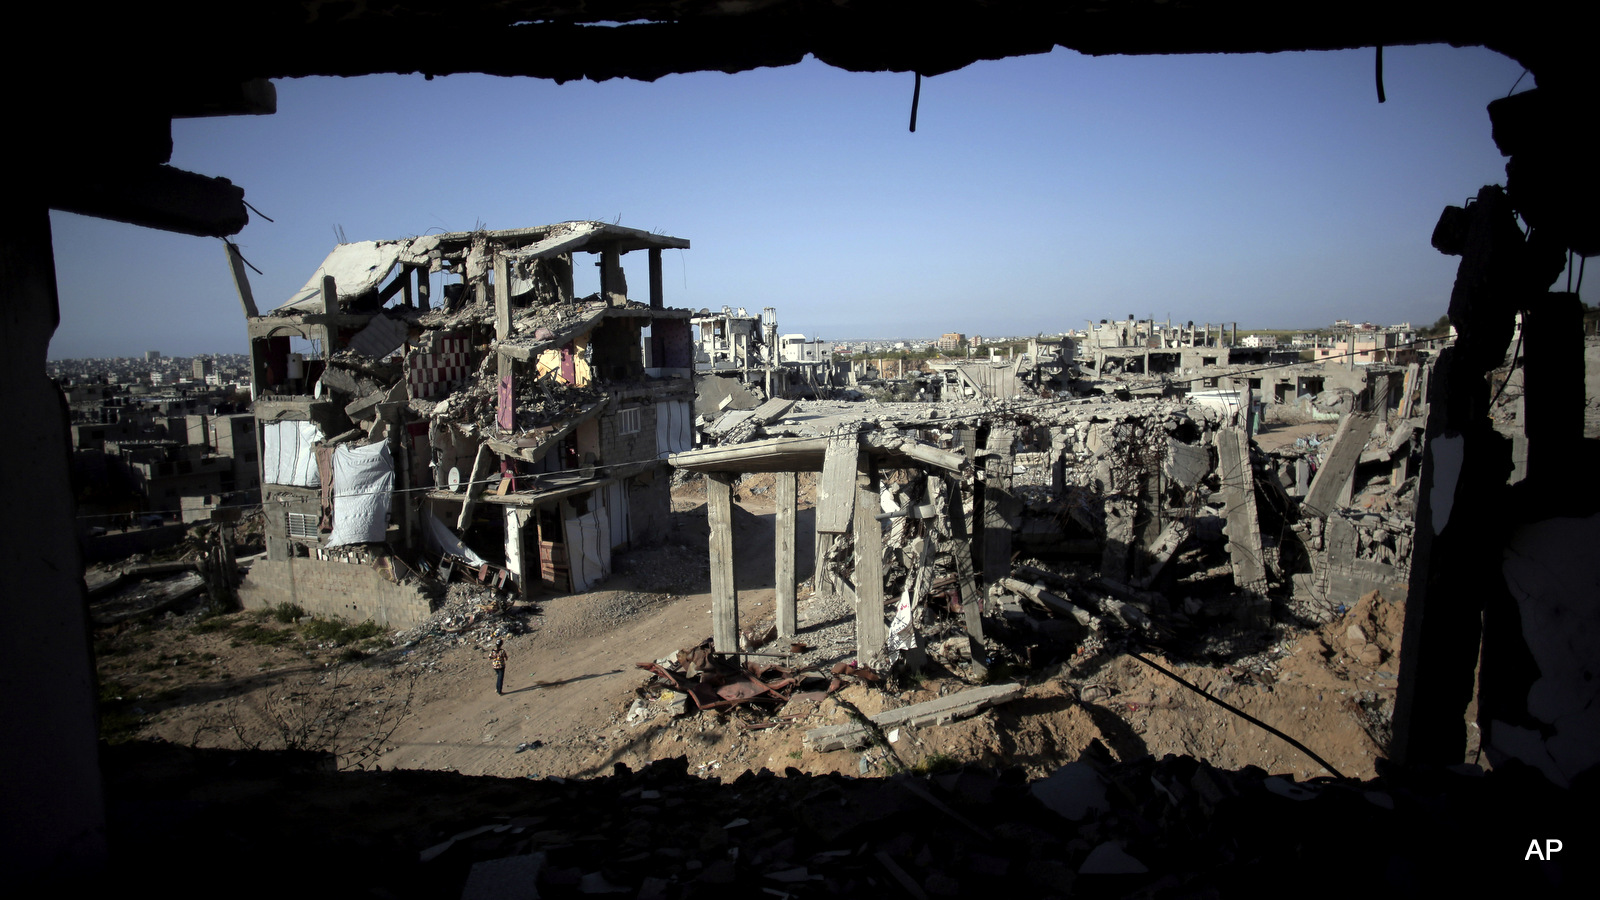 a Palestinian girl walks next to destroyed houses, in the Shijaiyah neighborhood of Gaza City